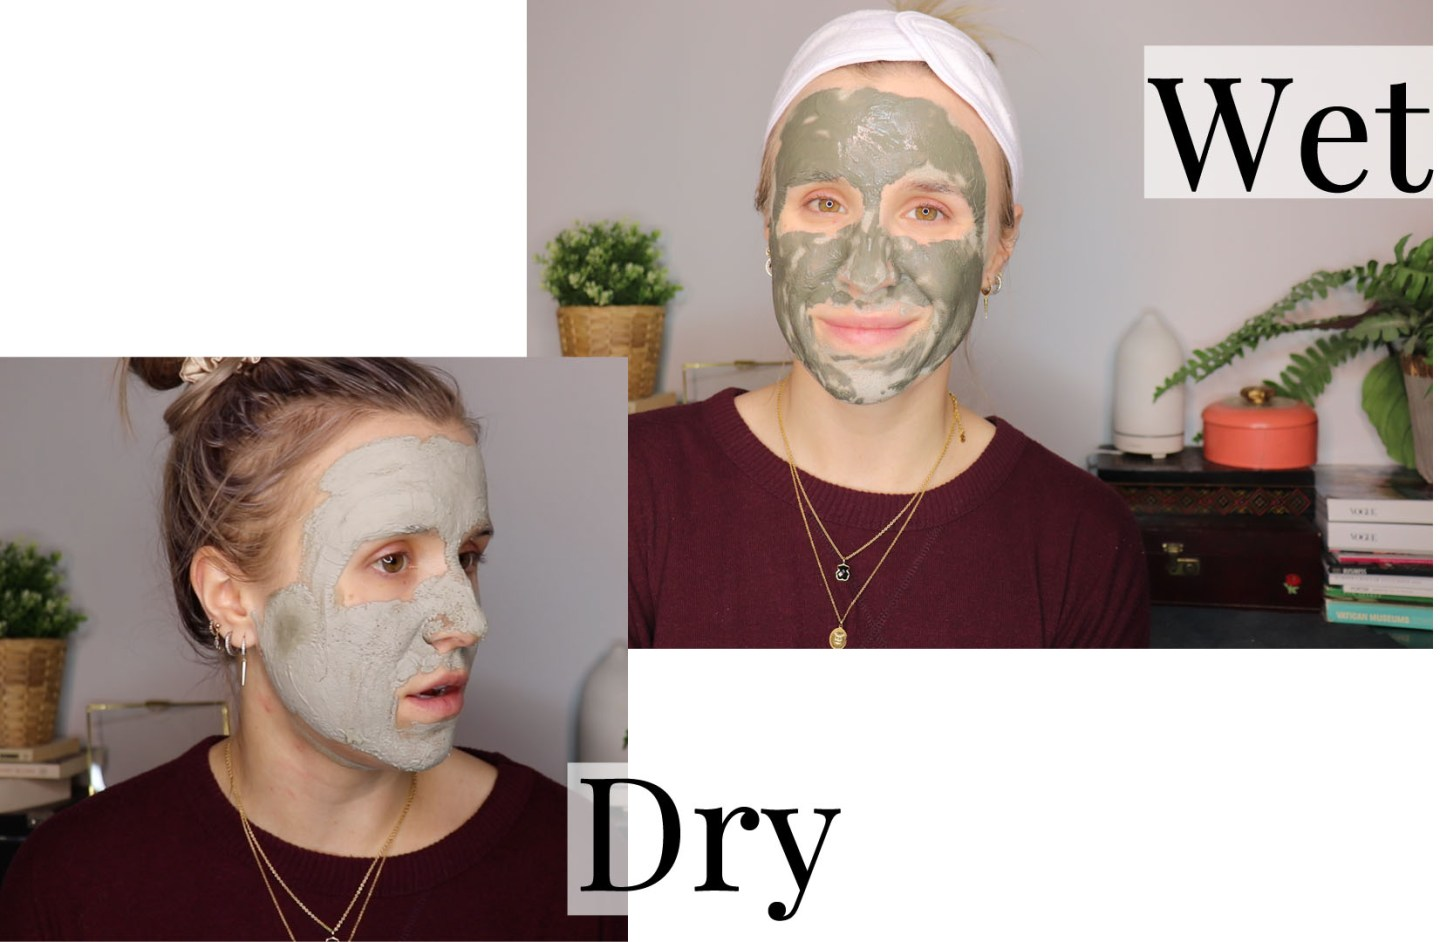 nena During Face mask images.jpg